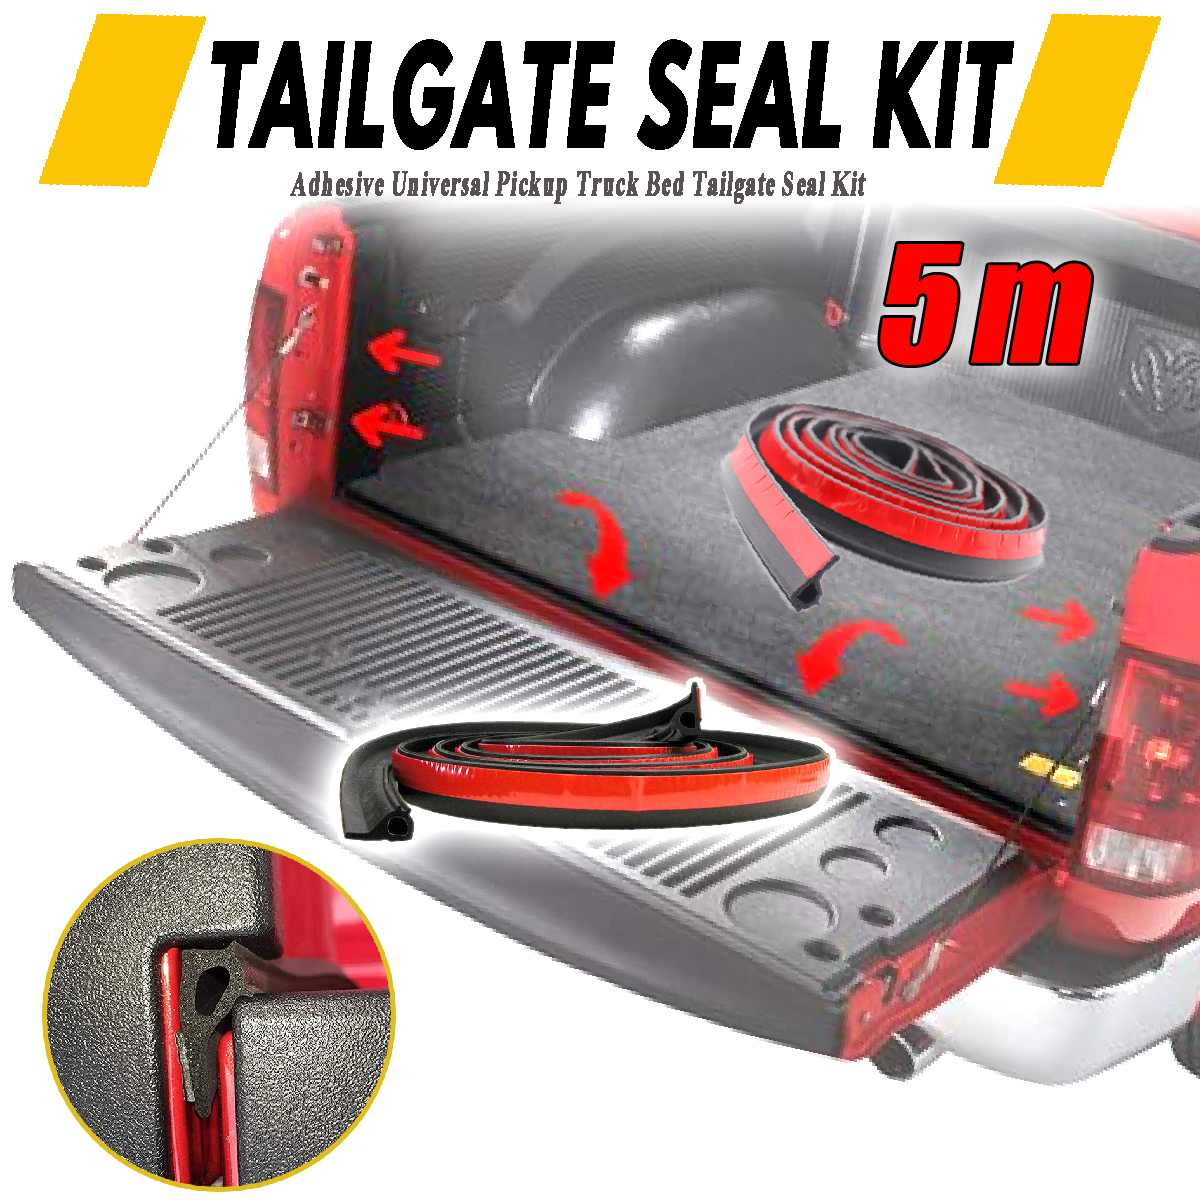 5M Adhesive Universal Weather Stripping Pickup Truck Bed Rubber Tailgate Seal Kit Tailgate Cover Sound Insulation